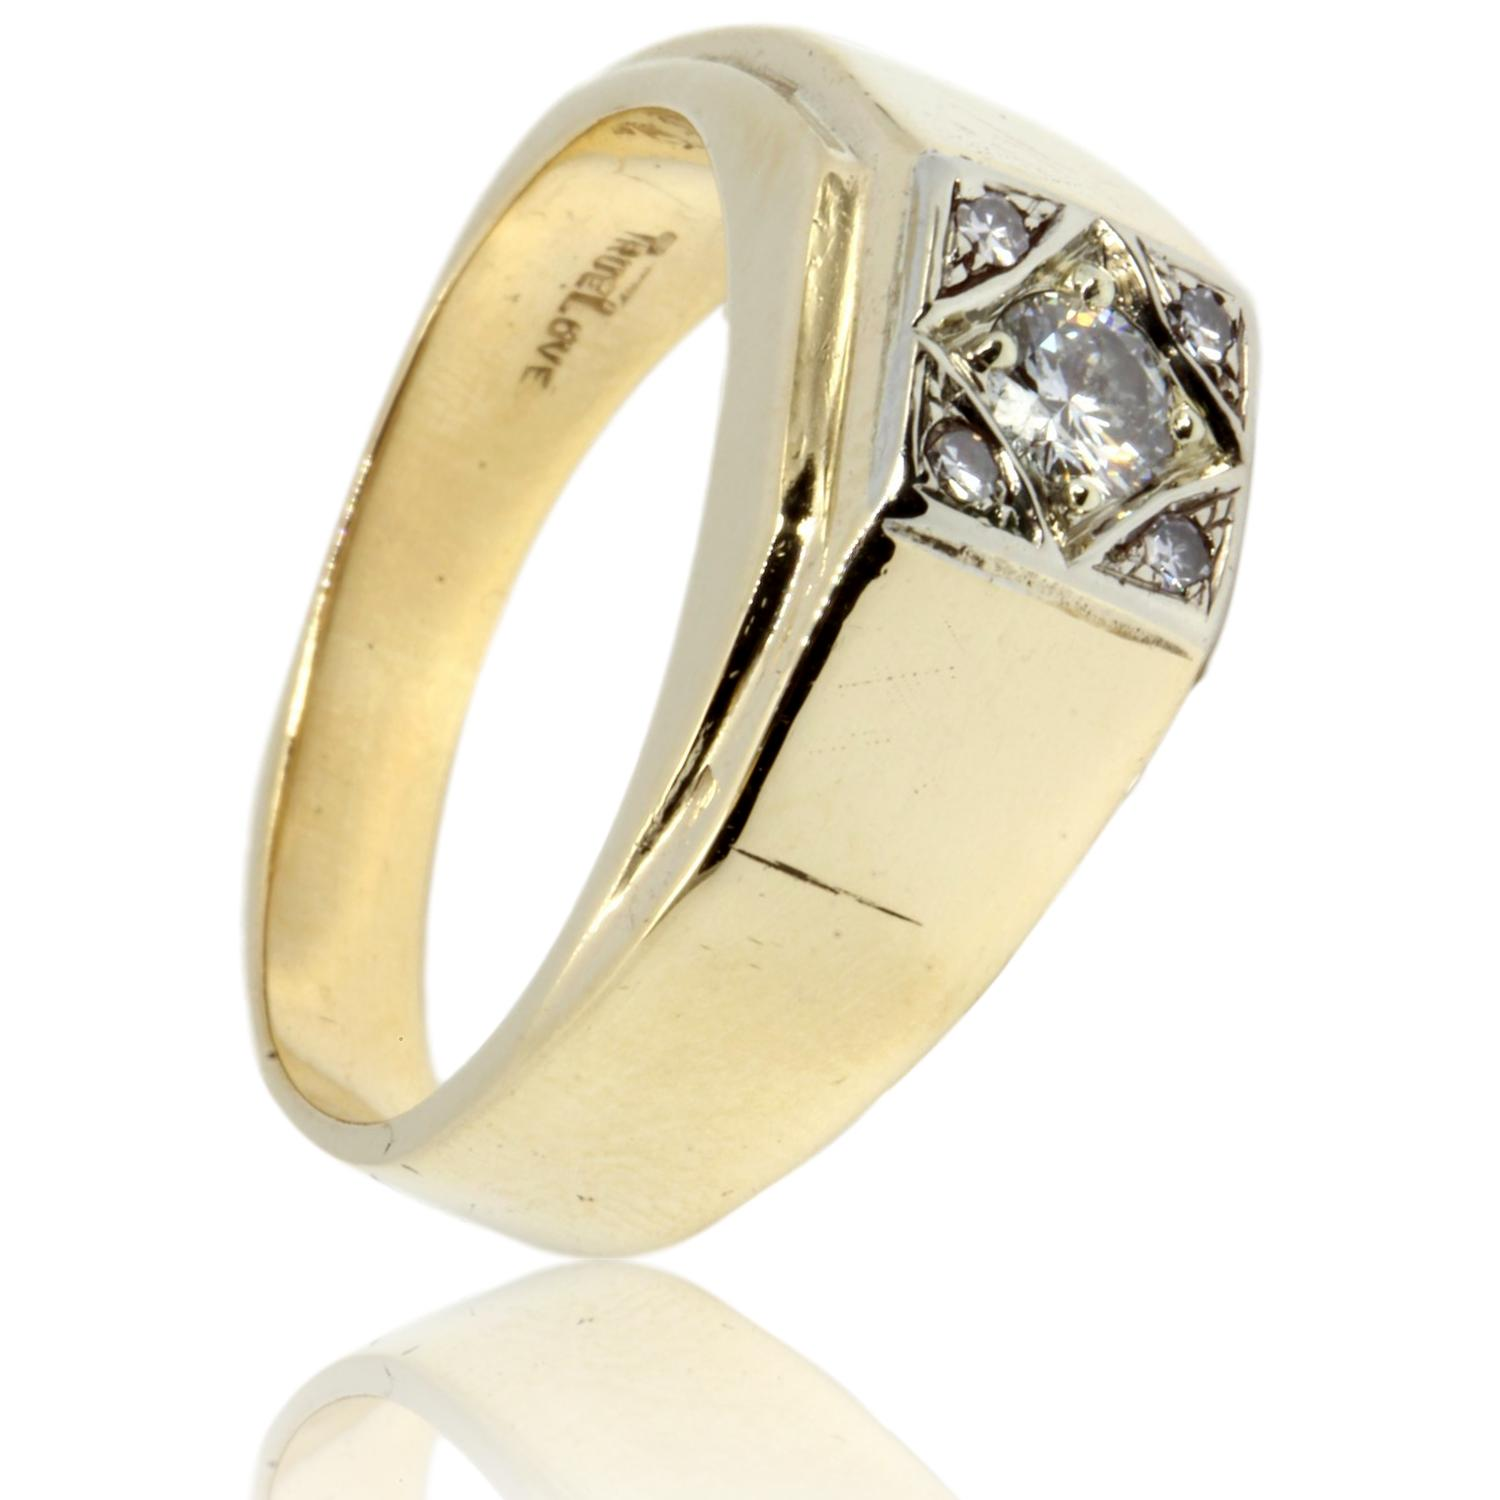 14K-Gold-.31ctw-Diamond-Mens-Ring_84608A.jpg